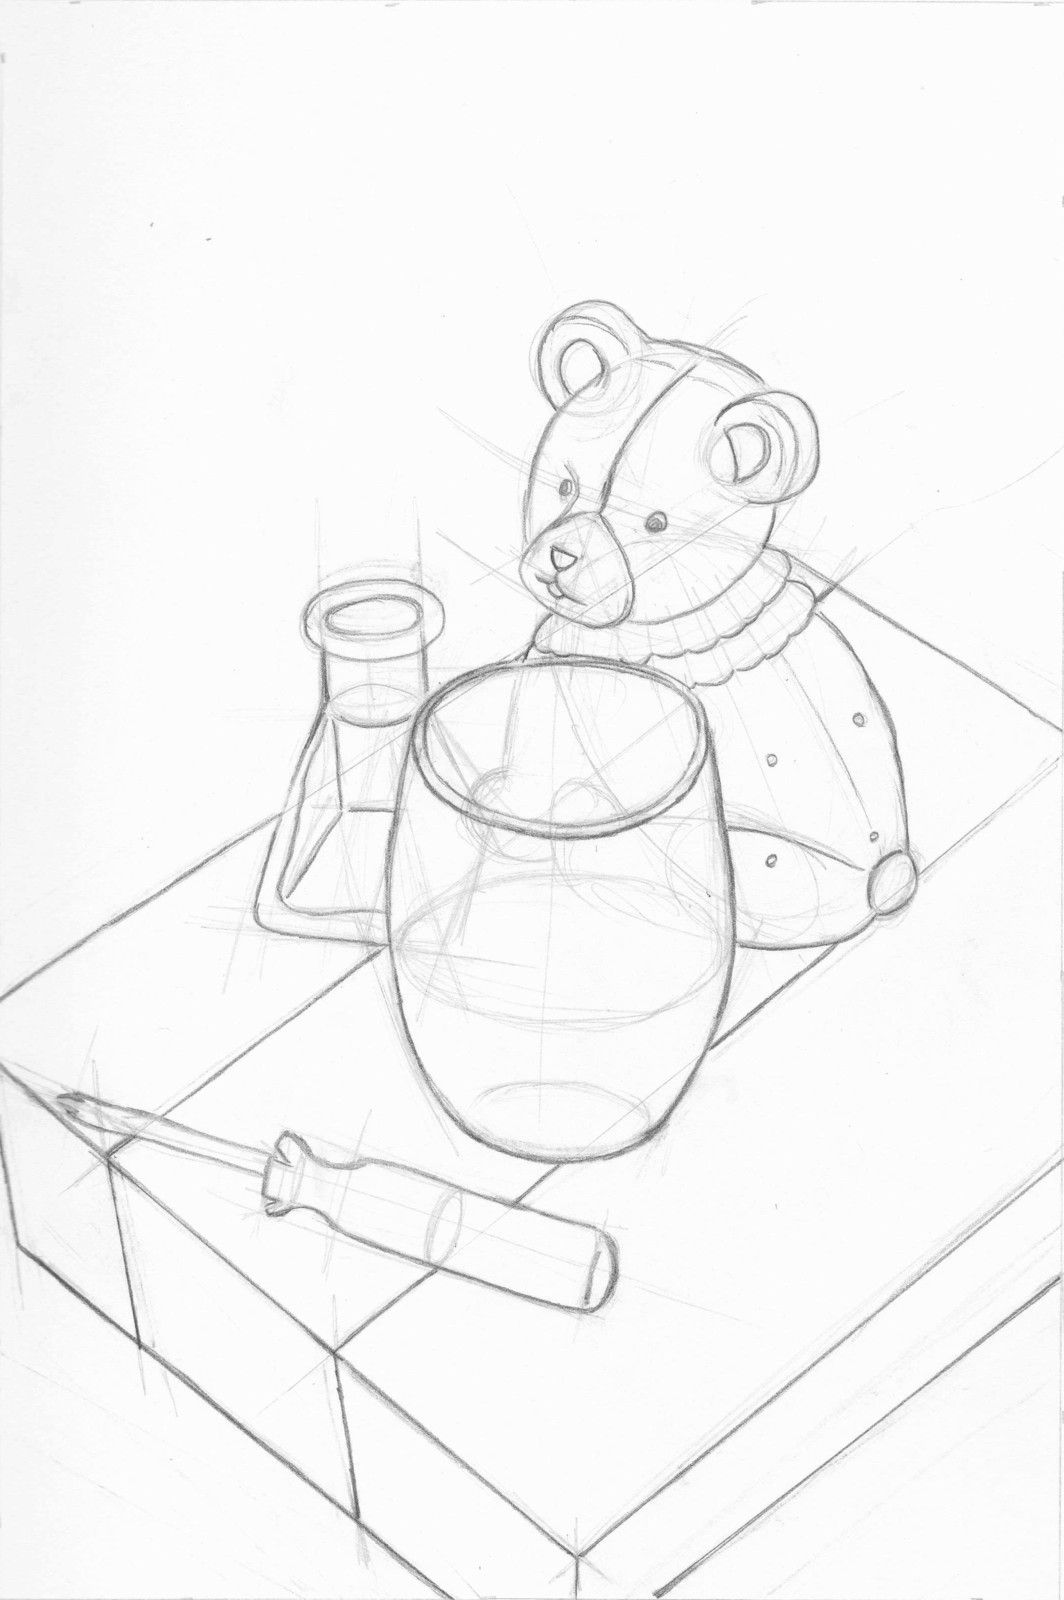 A bear bank, incense oil stick holder, empty candle jar, and a screwdriver on top of a box